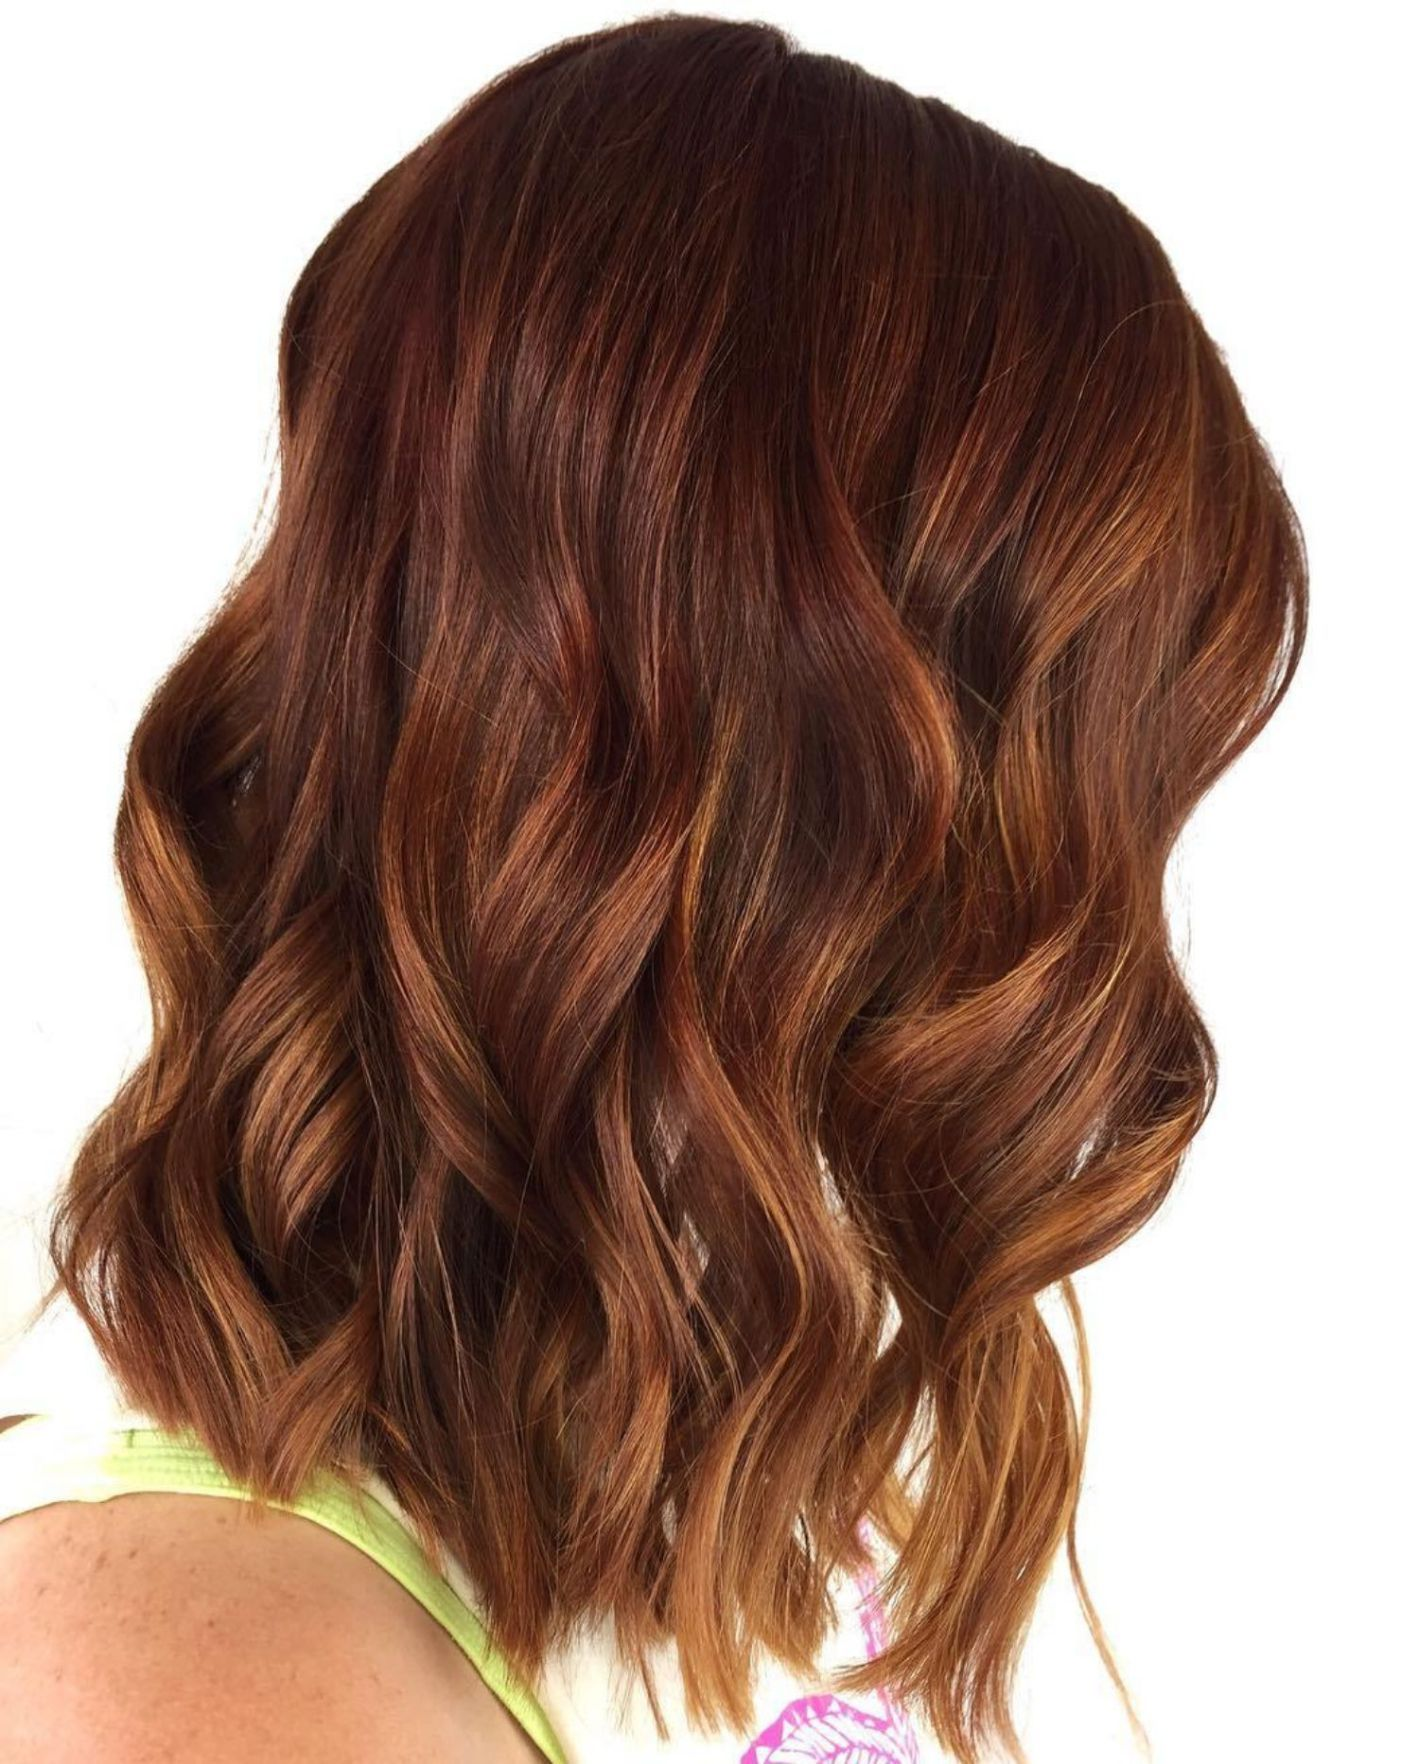 60 Auburn Hair Colors to Emphasize Your Individuality recommend